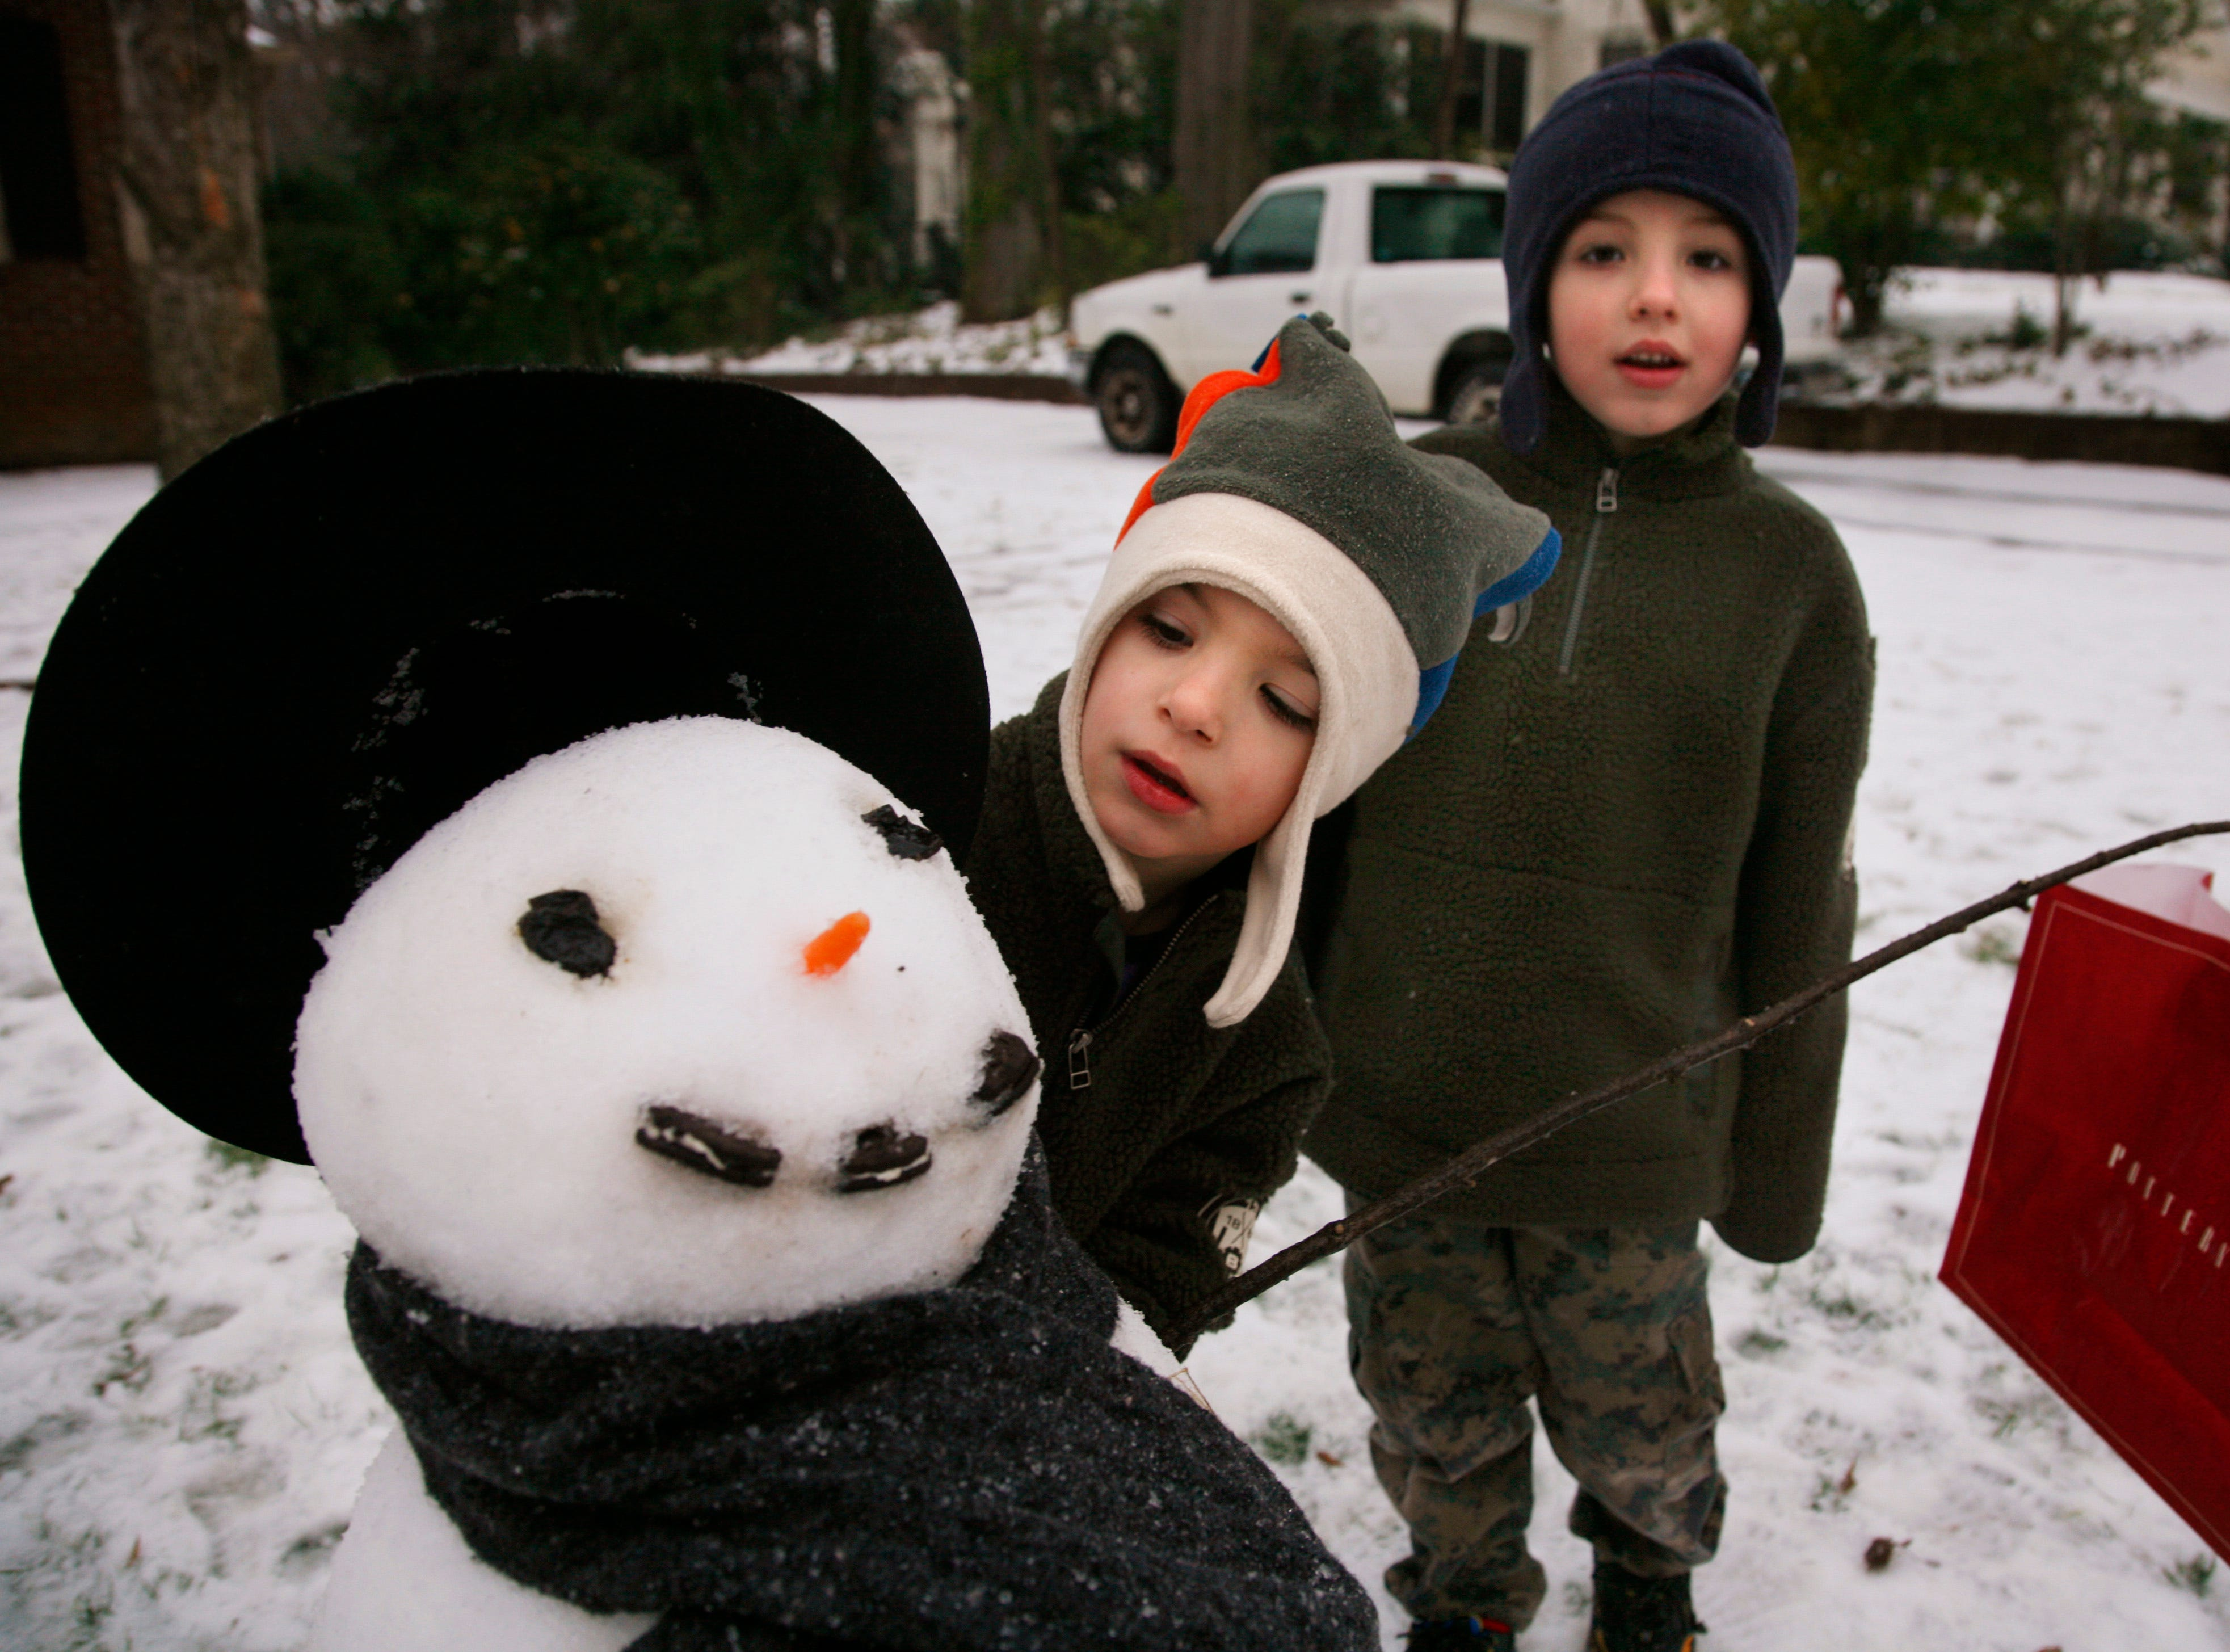 Craven Sykes, 4, and his brother Barber Sykes, 6, play with their snowman in front of their North Main Street home Thursday morning. Snow and rain blanketed Greenville Thursday, February 1, 2007.